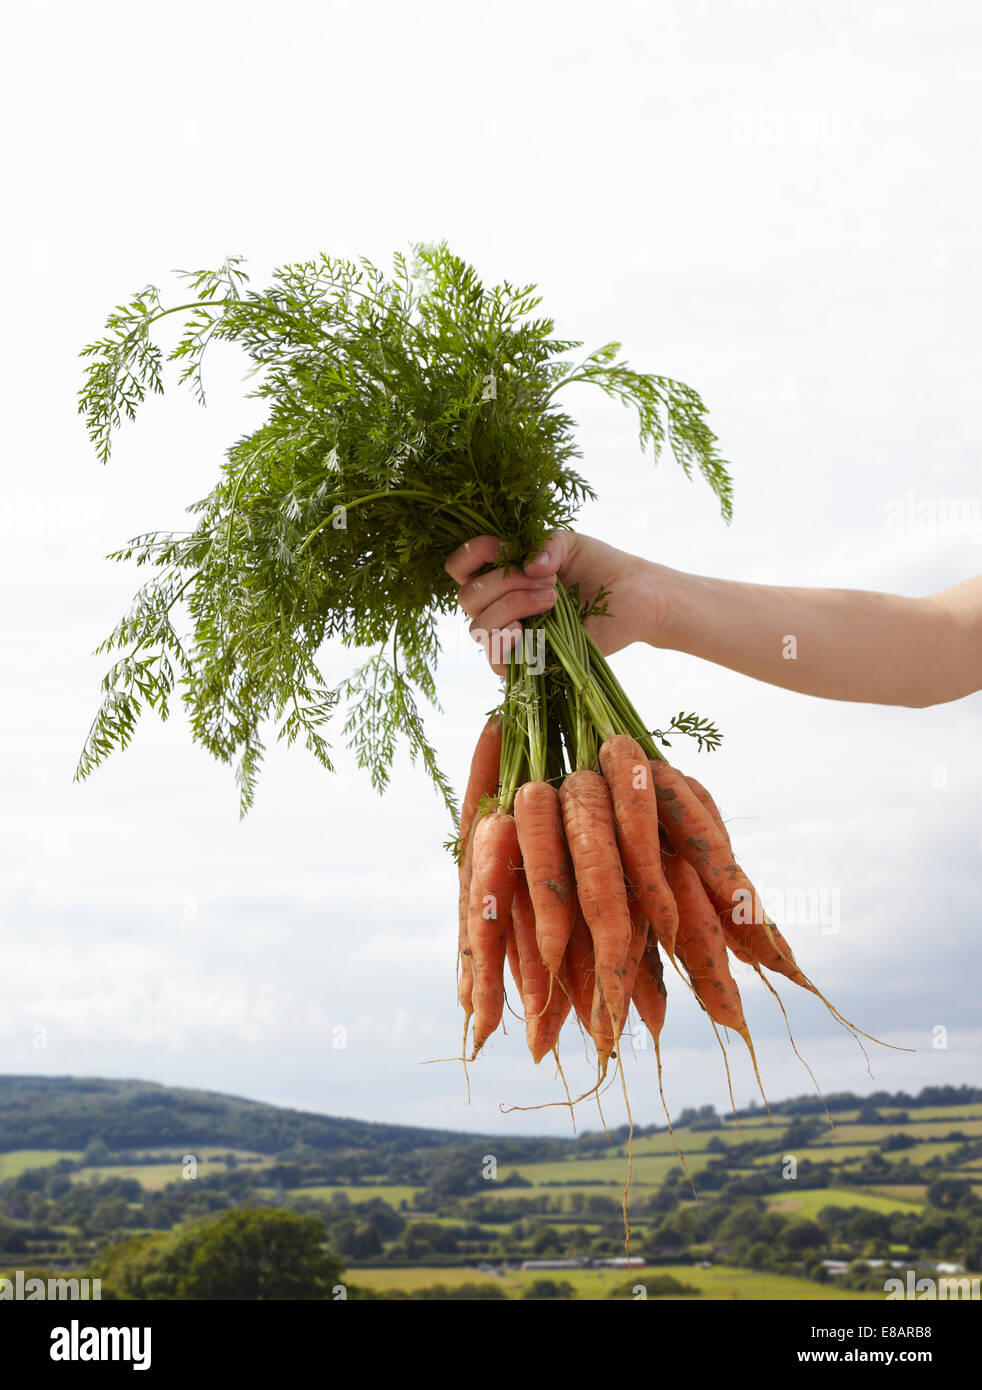 Hand holding up bunch of carrots - Stock Image